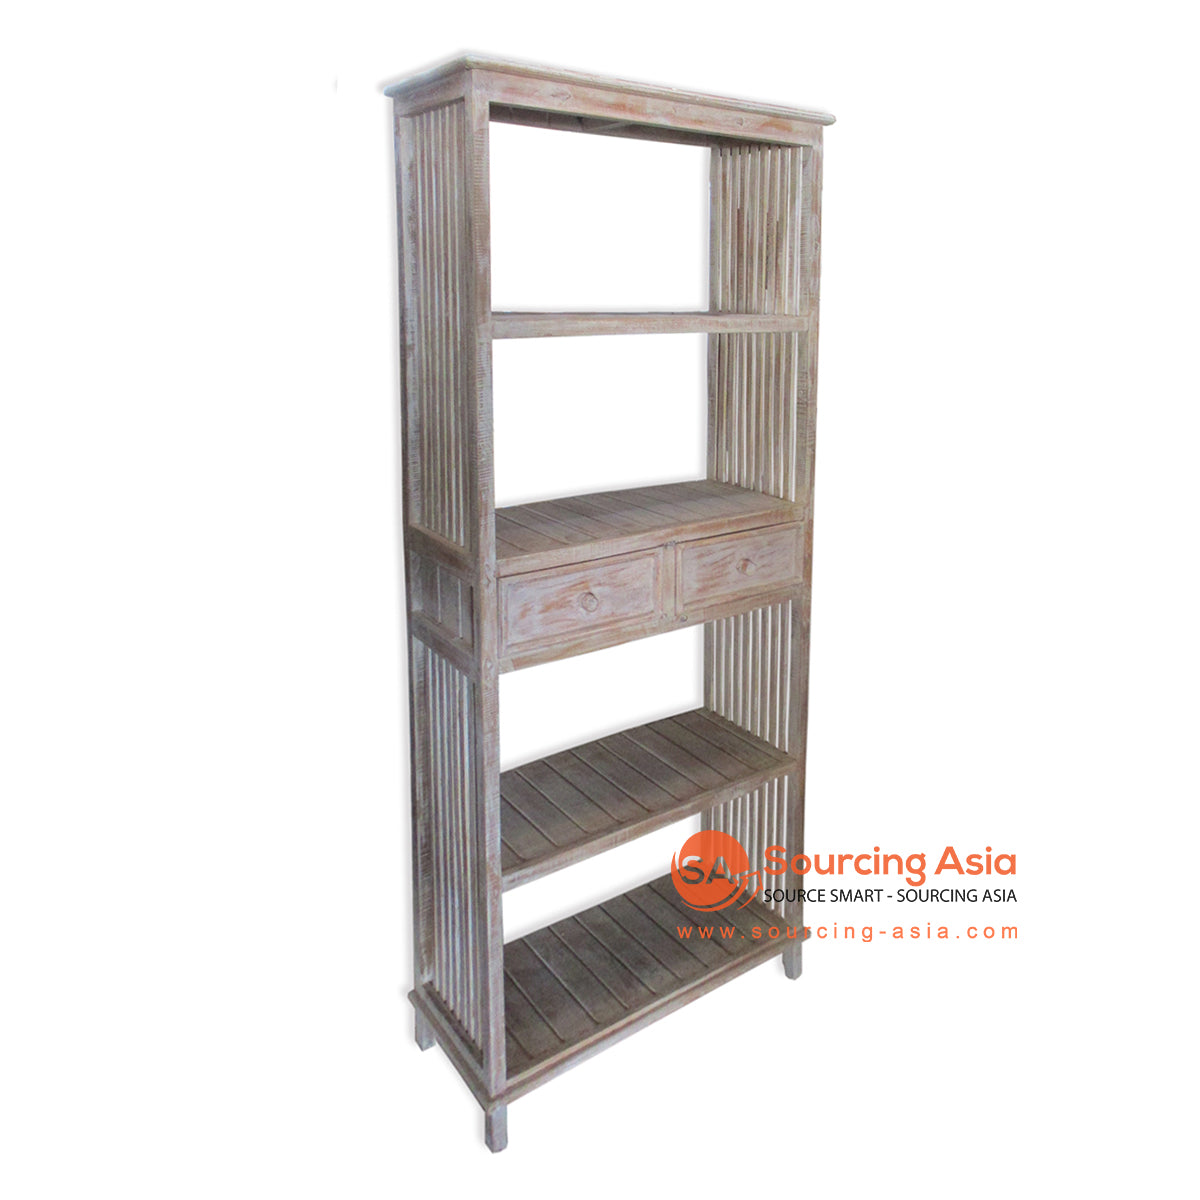 THE138BW BOOK RACK WITH 2 DRAWER BROWN WASH